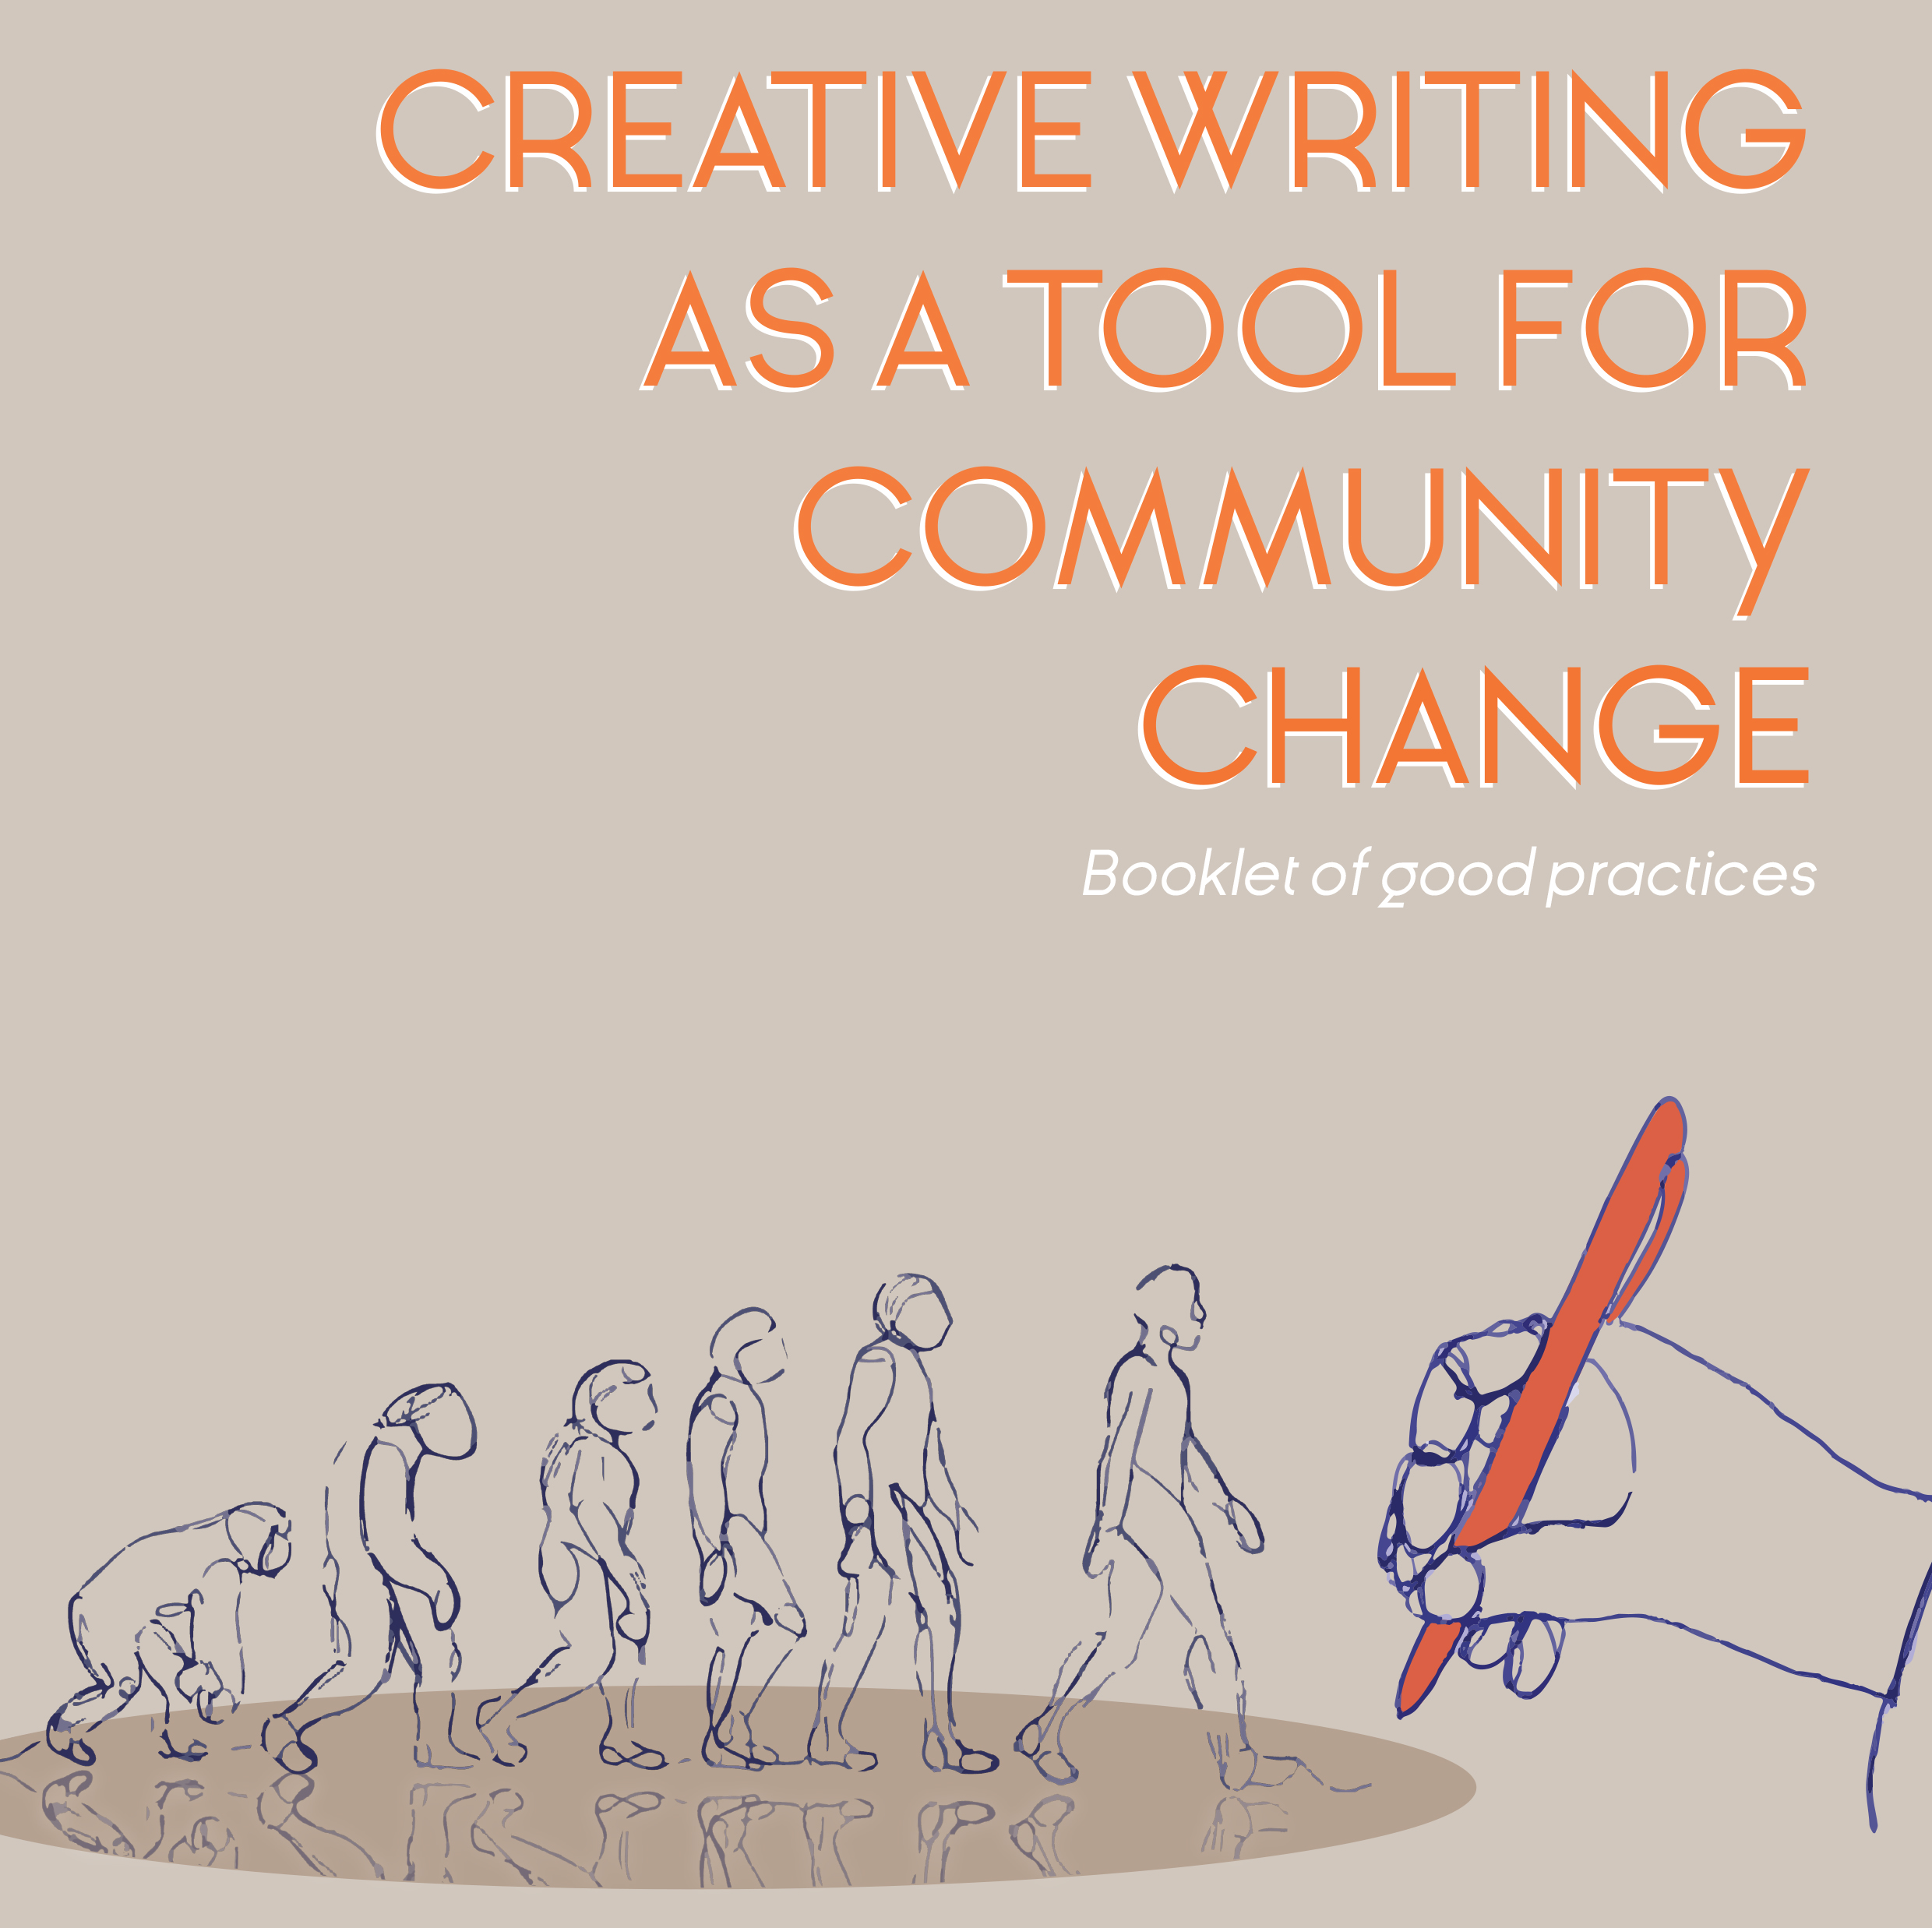 Creative Writing as a tool for Community Change